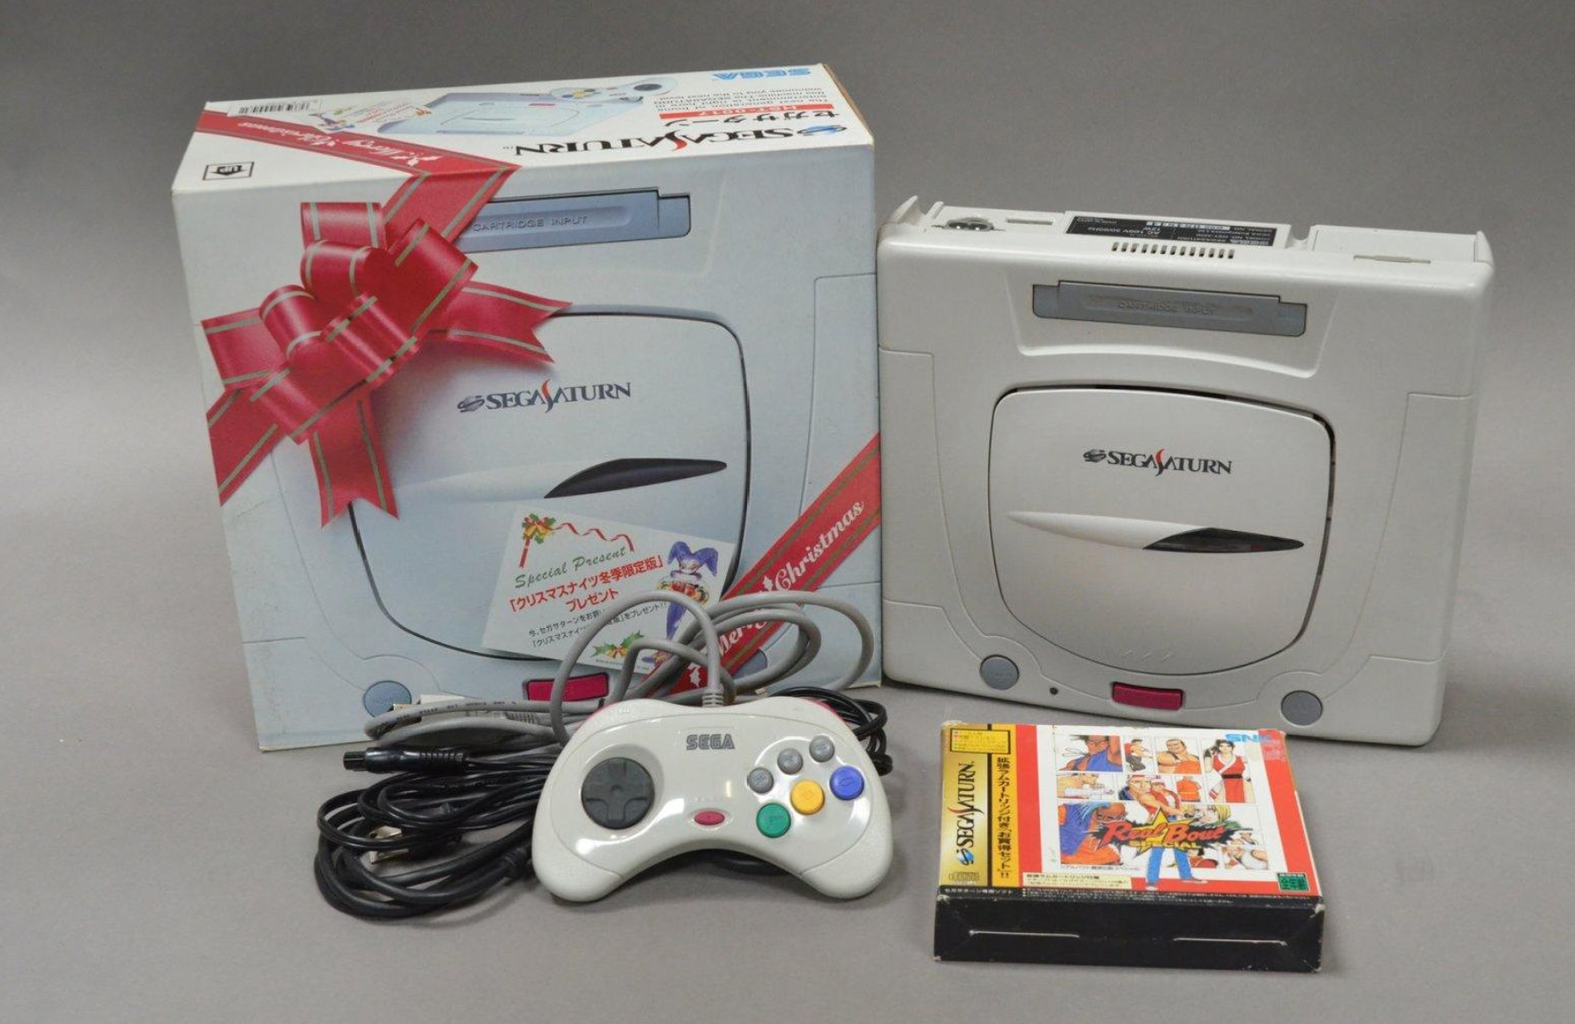 Sega saturn console variations the database for all console colors and variations - Sega saturn virtual console ...